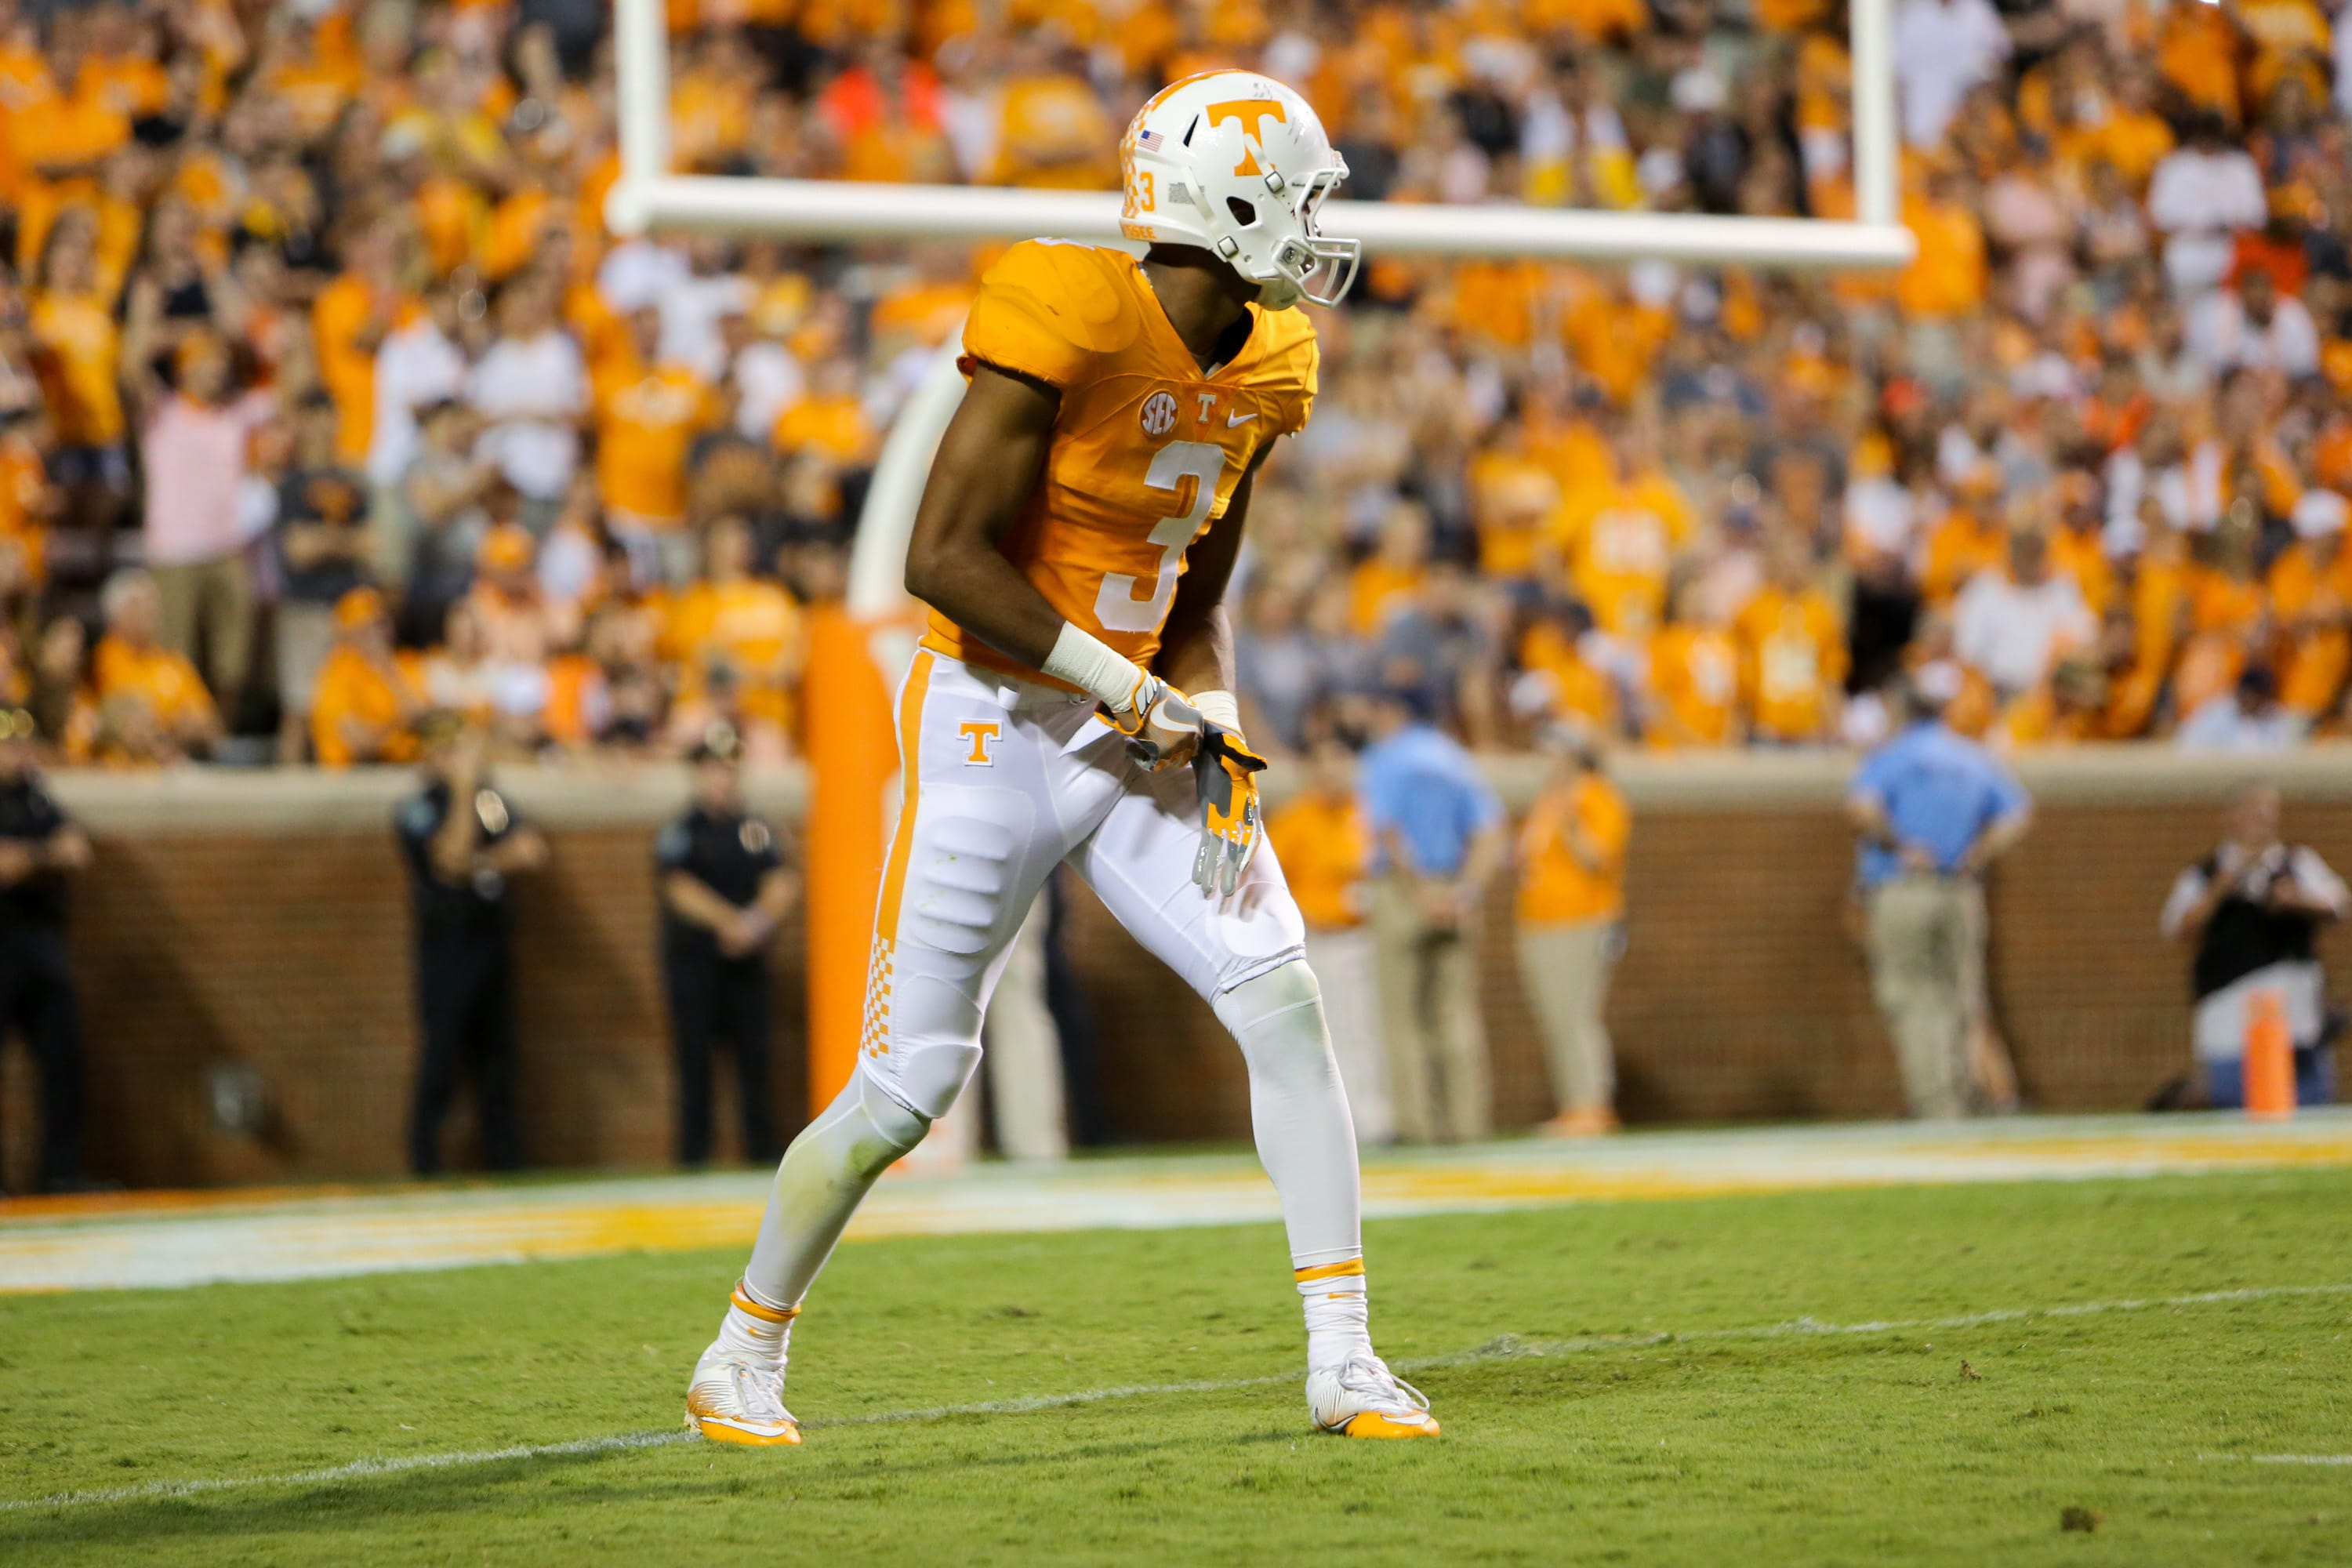 2017 NFL Draft: Top 5 Landing Spots for Vols WR Josh Malone - Page 3